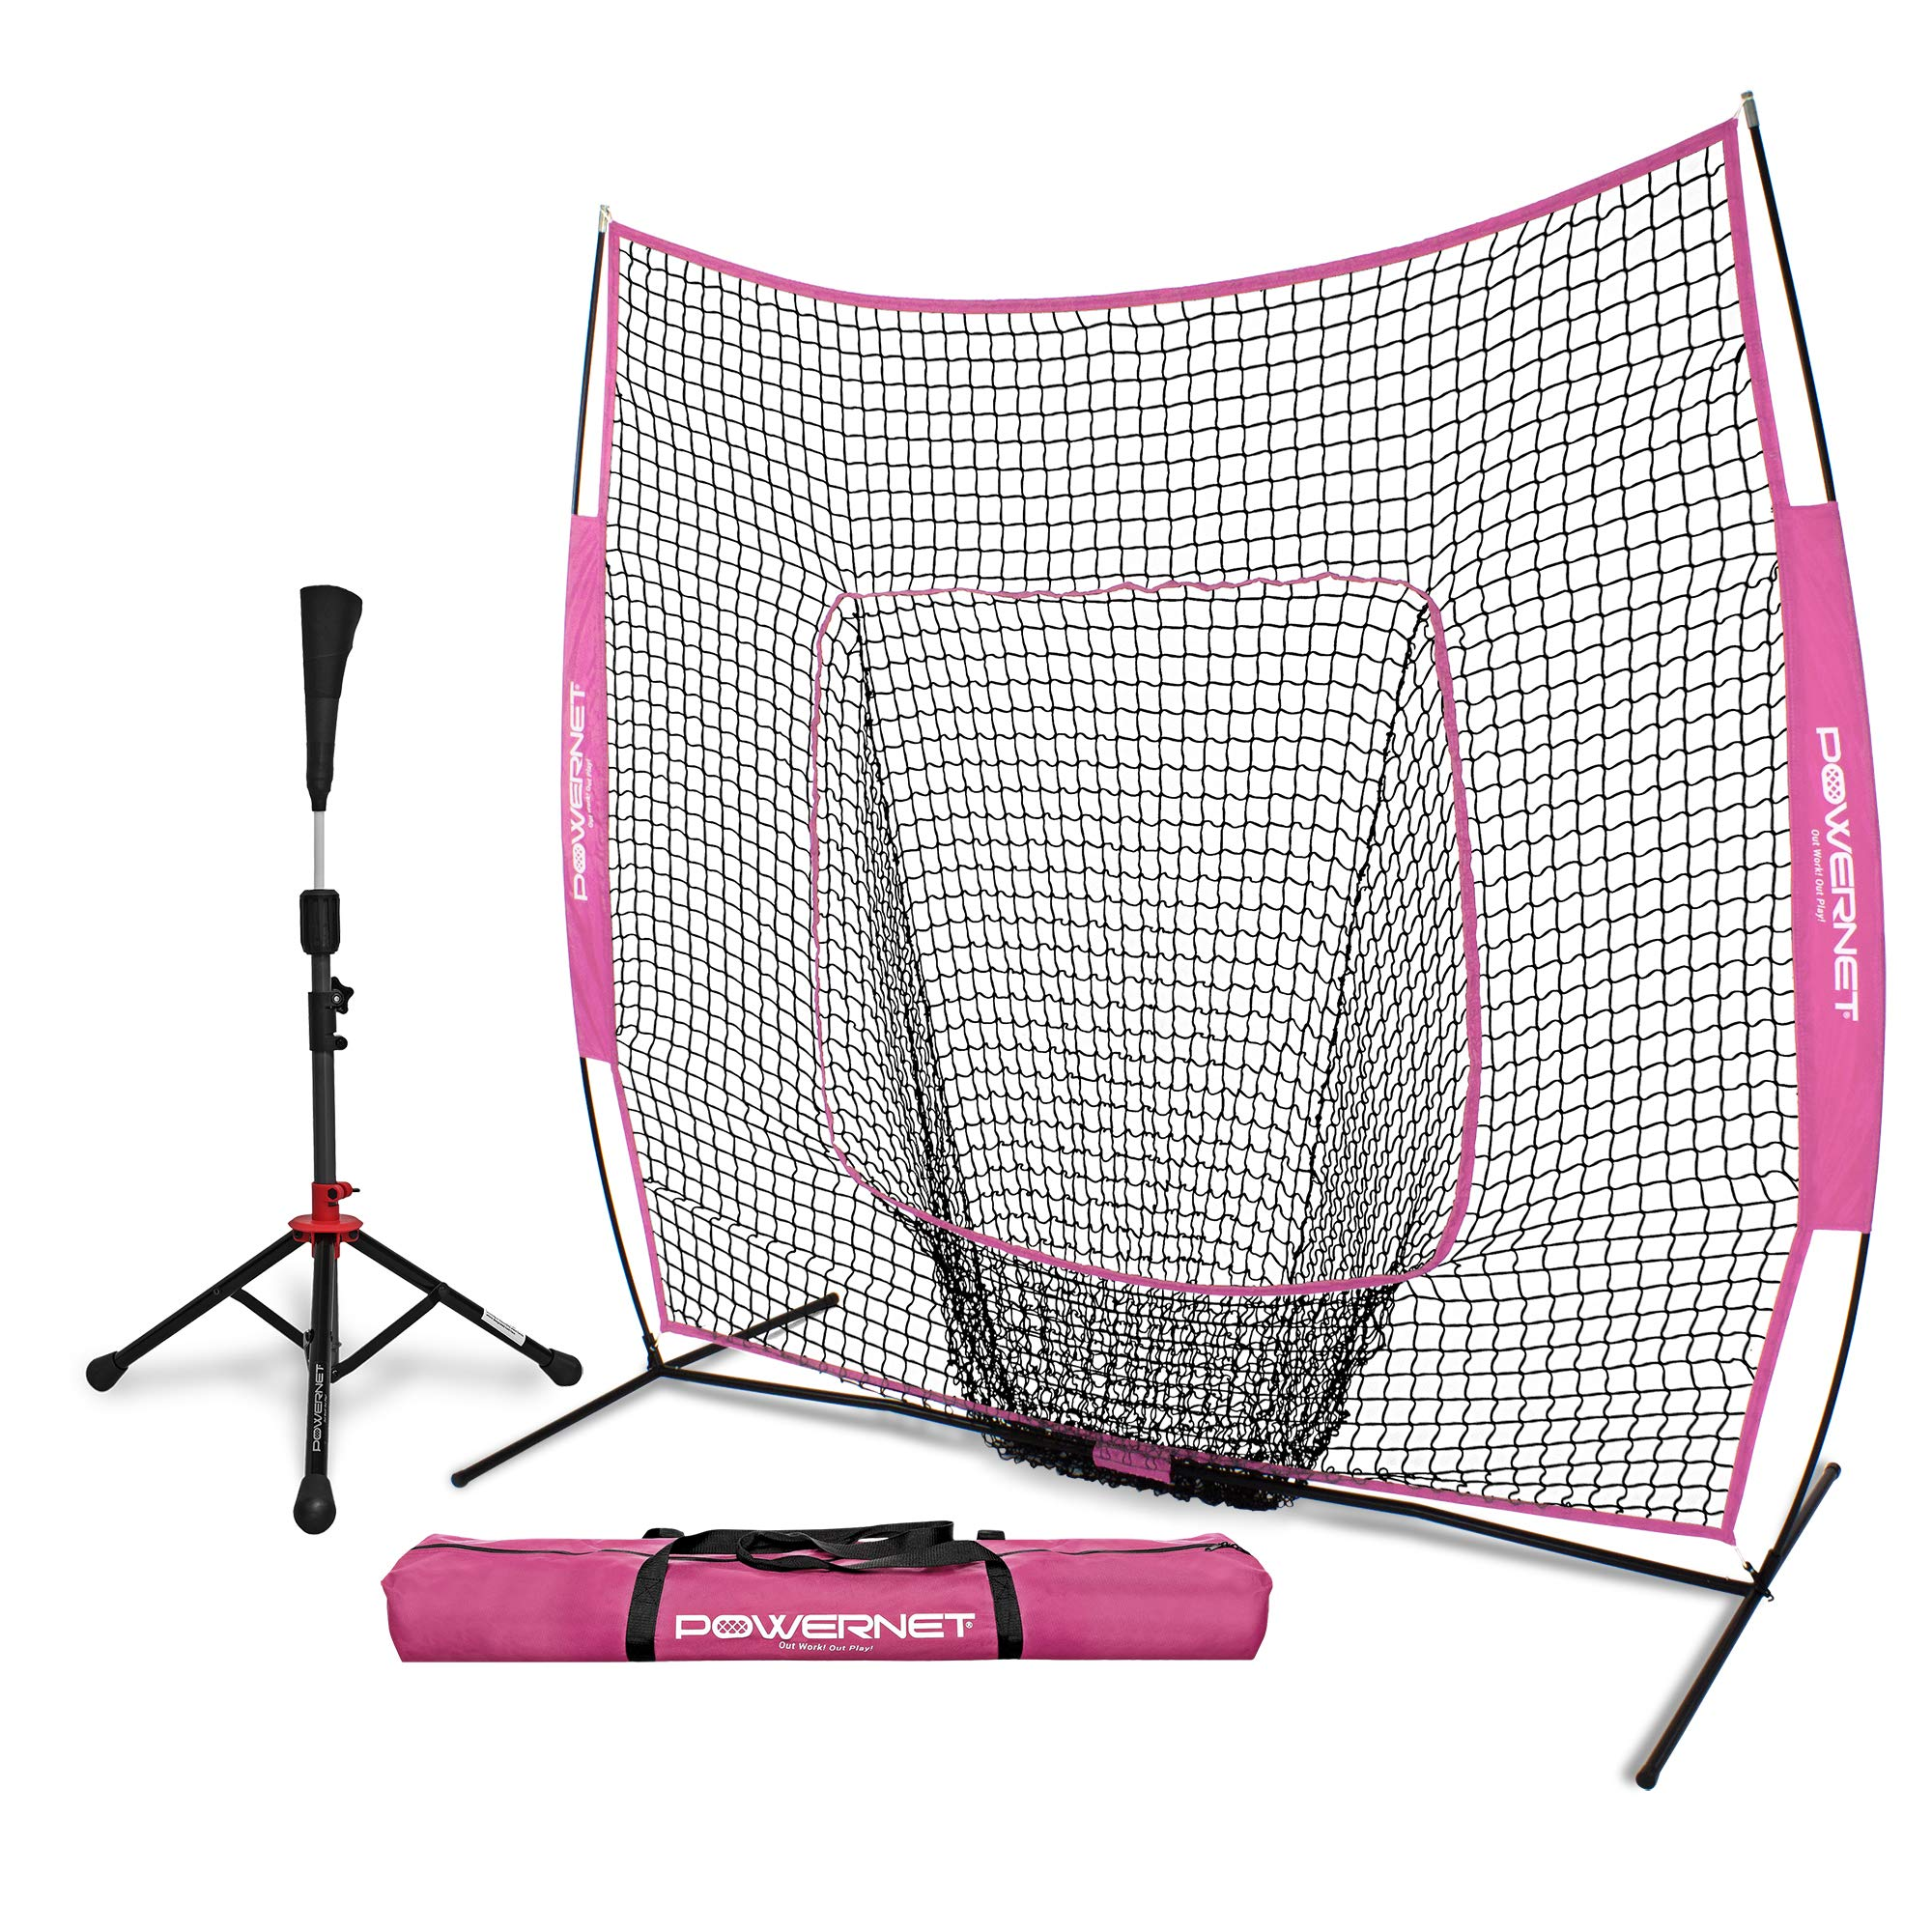 PowerNet Baseball Softball Practice Net 7x7 with Deluxe Tee (Pink) | Practice Hitting, Pitching, Batting, Fielding | Portable, Backstop, Training Aid, Lg Mouth, Bow Frame | Training Equipment Bundle by PowerNet